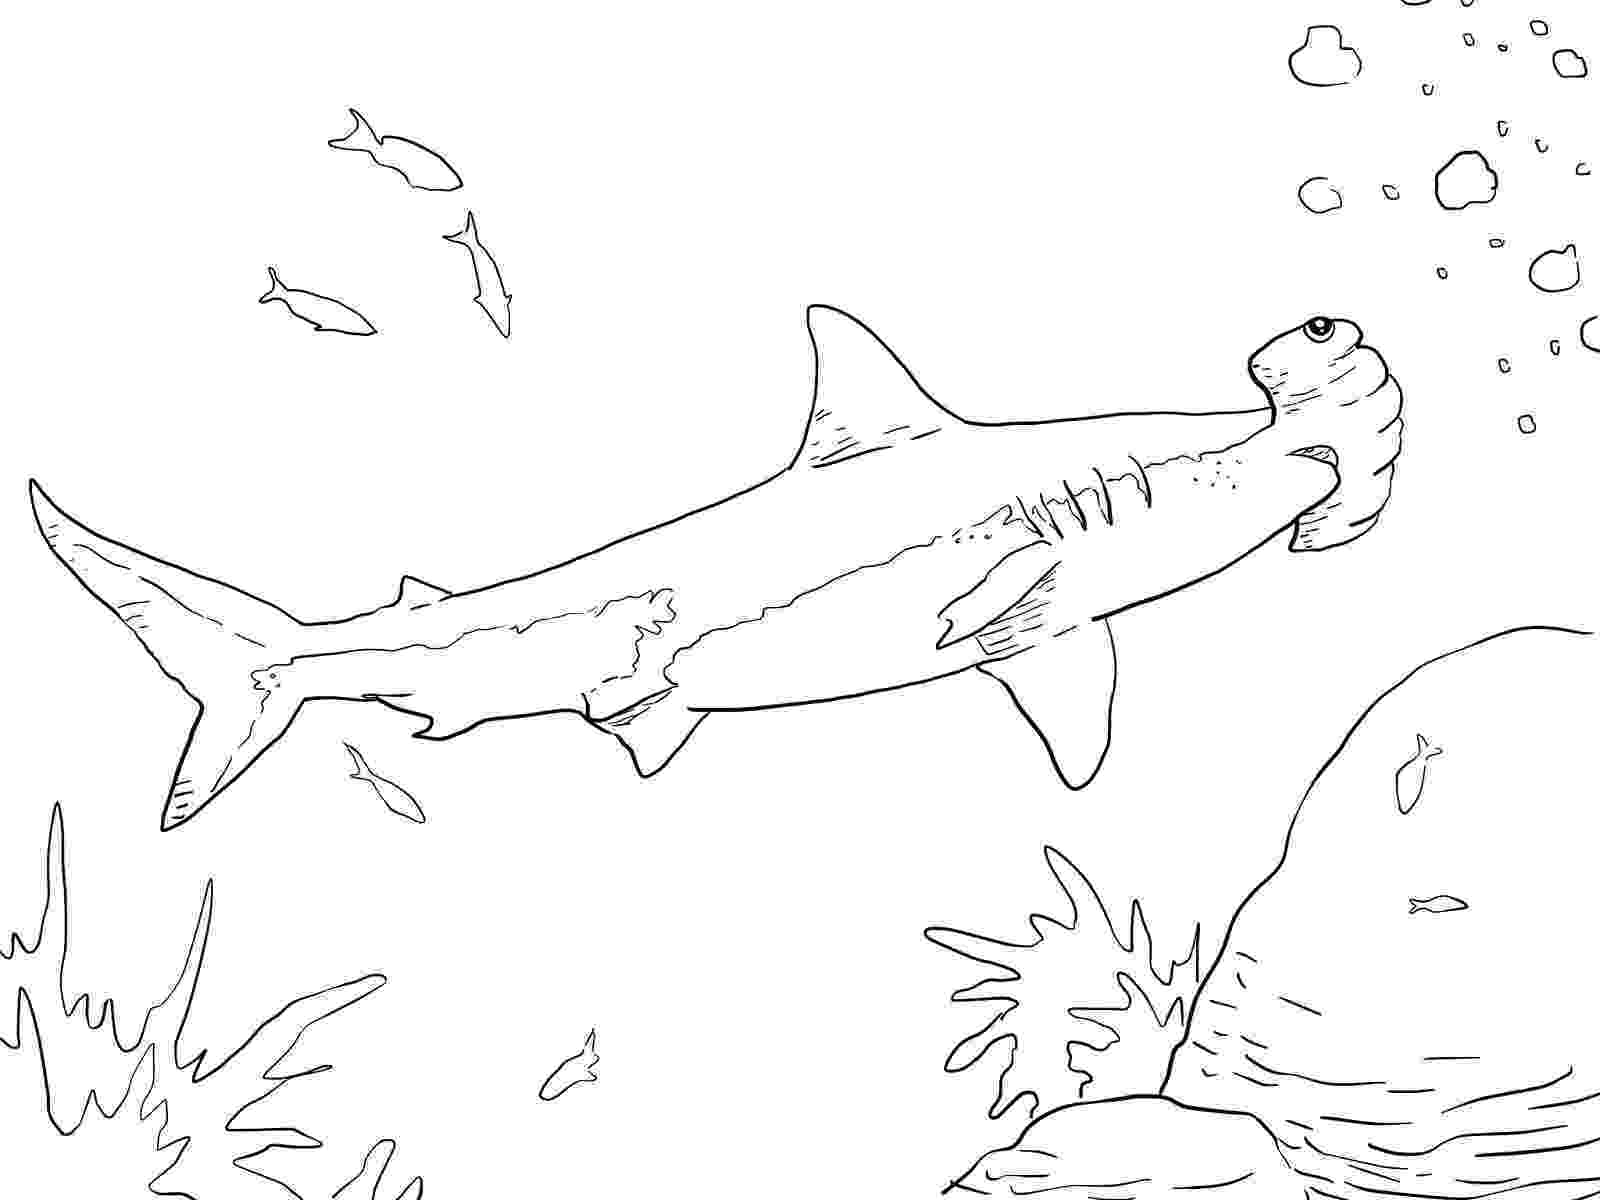 hammerhead shark coloring pages to print hammerhead shark cut out pattern clipart best to coloring print pages shark hammerhead